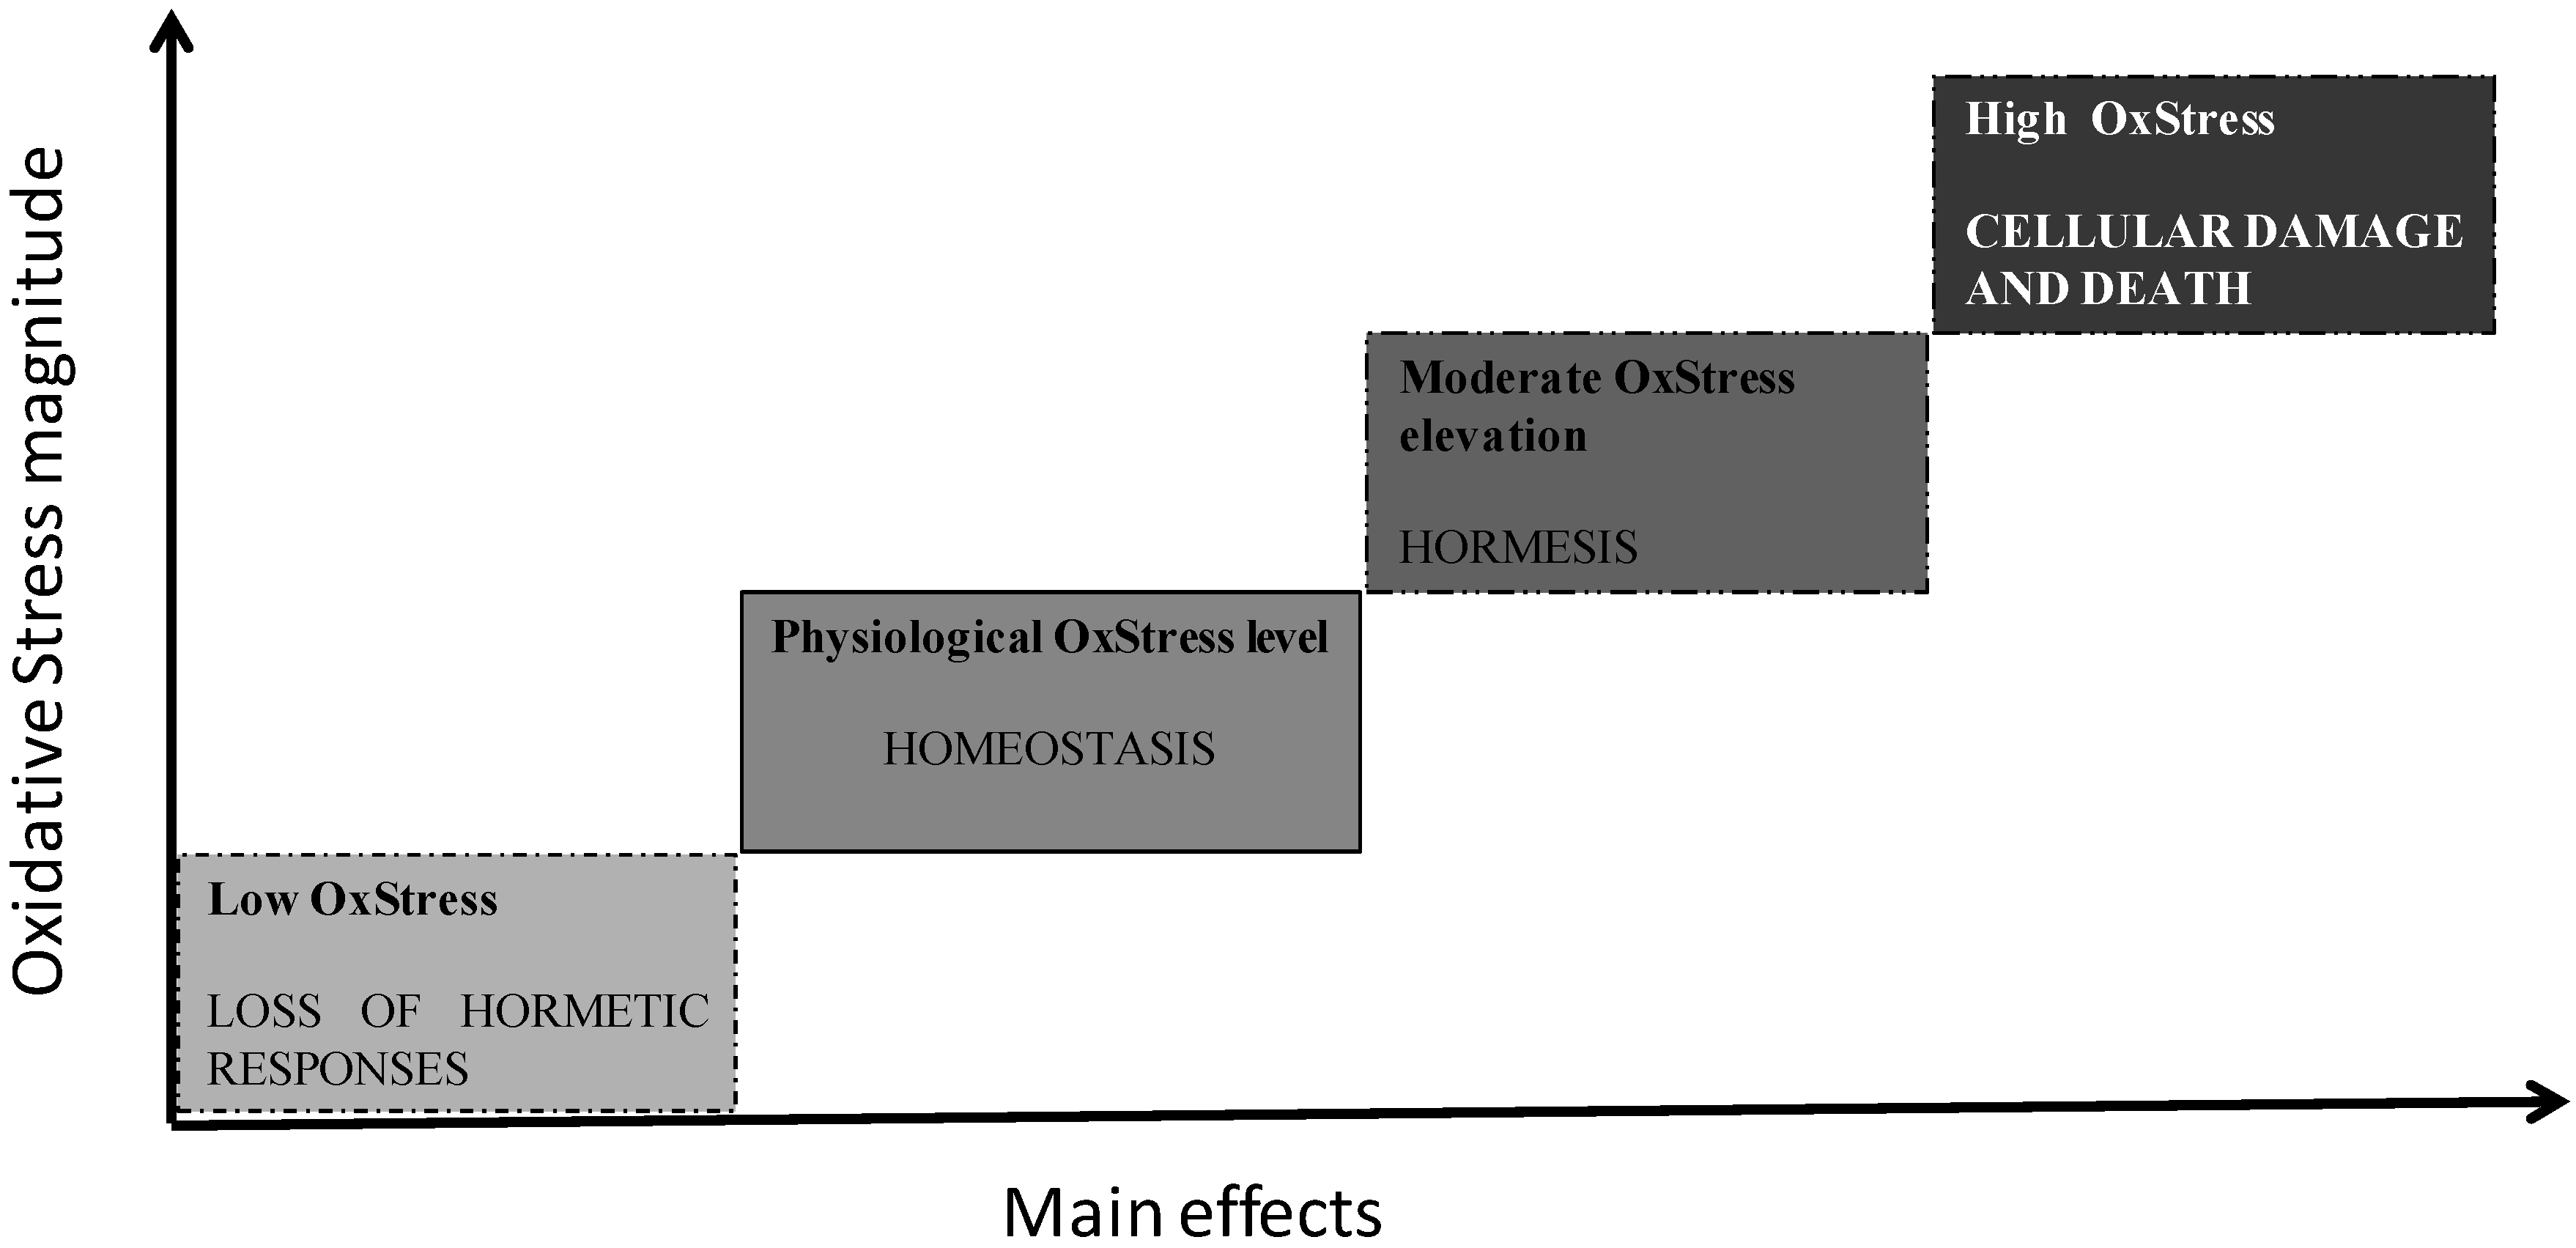 Effects of moderate alcohol consumption on oxidative stress